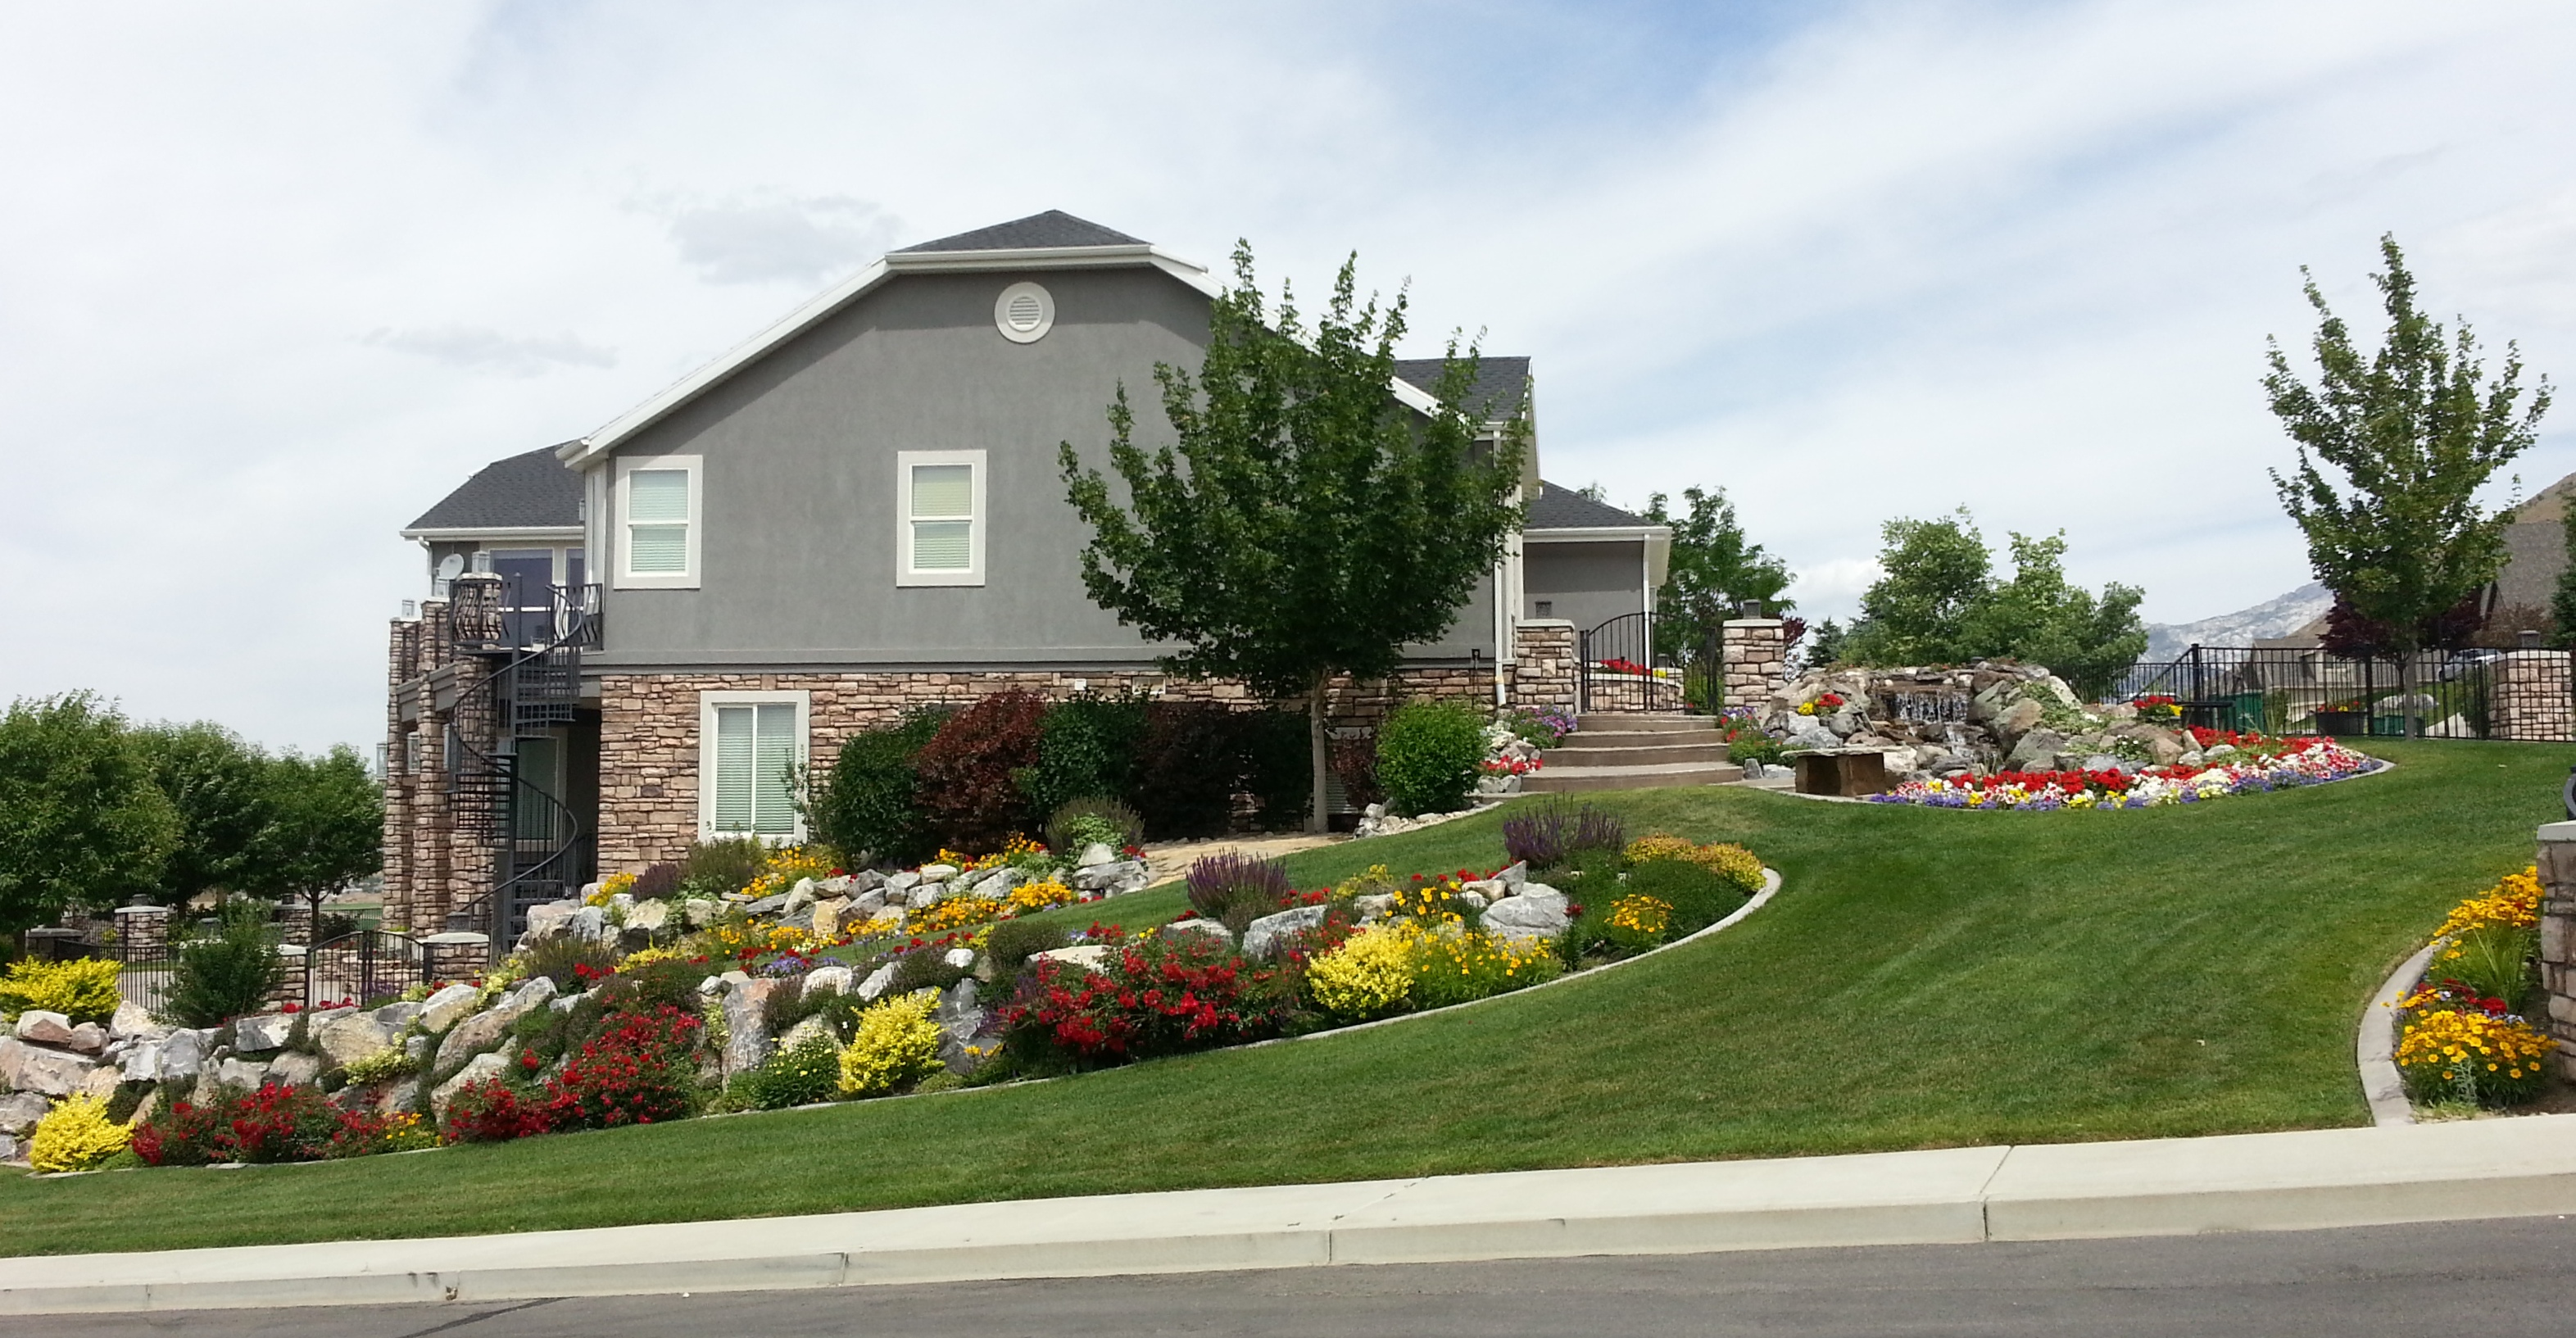 Bobbie Weber - Yard of the Month - June 2013